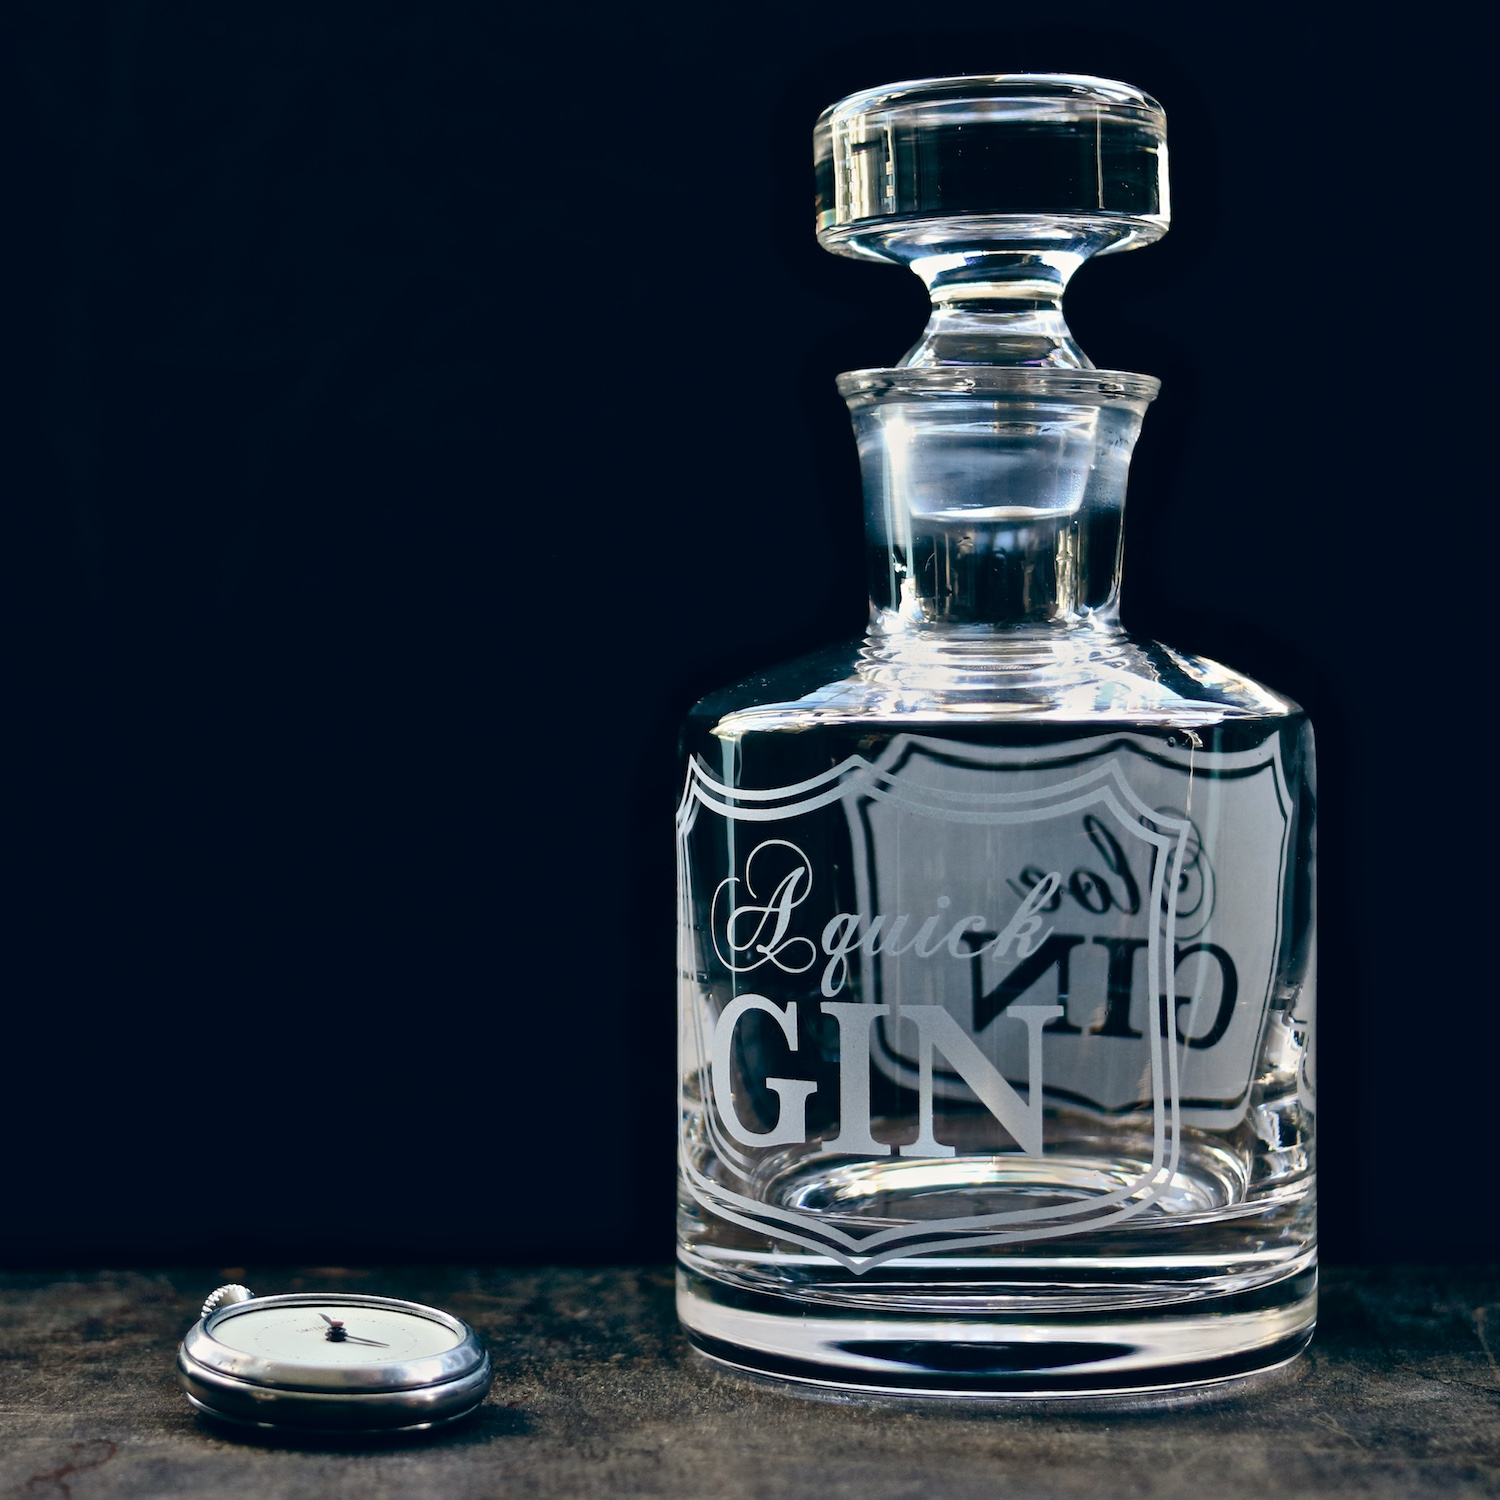 quick-gin-sloe-gin-etched-decanter-vinegar-and-brown-paper.jpg